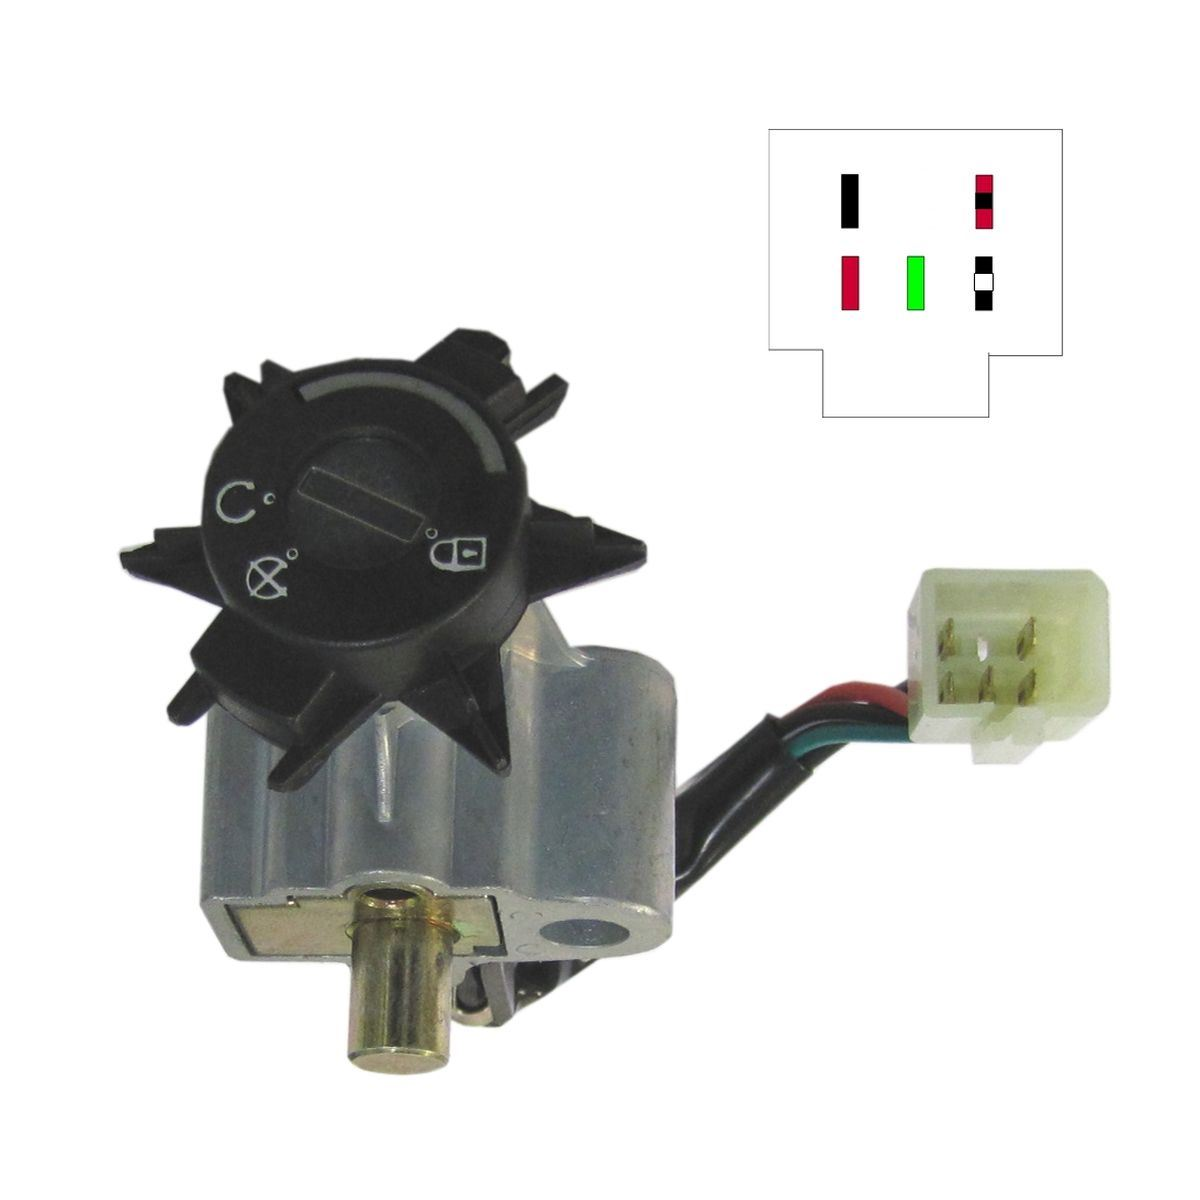 aw motorcycle parts ignition switch peugeot ludix 50 5 wire. Black Bedroom Furniture Sets. Home Design Ideas